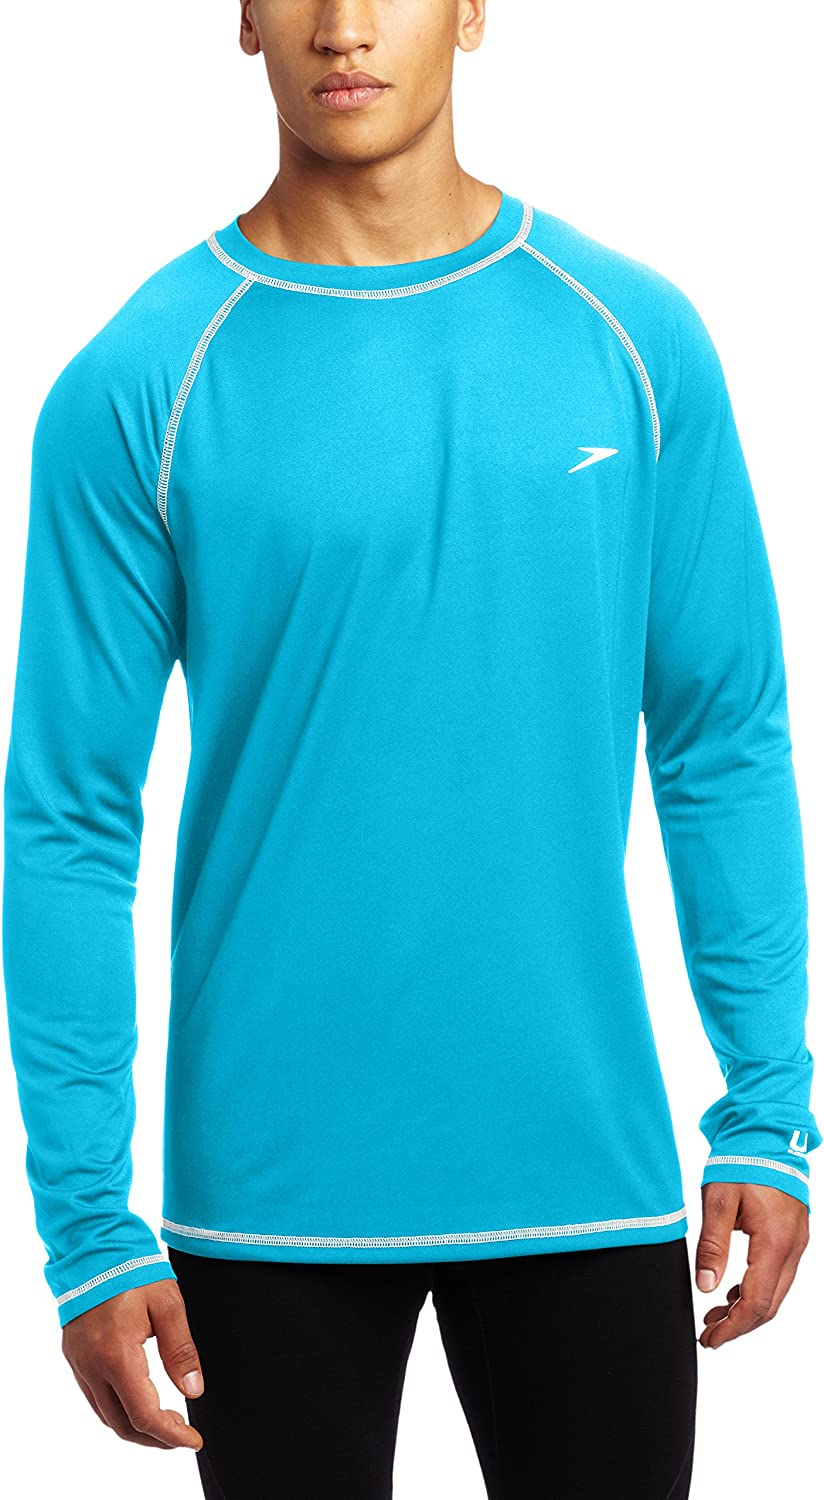 Speedo mens Uv Swim Shirt Long Sleeve Loose Fit Easy Tee - Manufacturer Discontinued